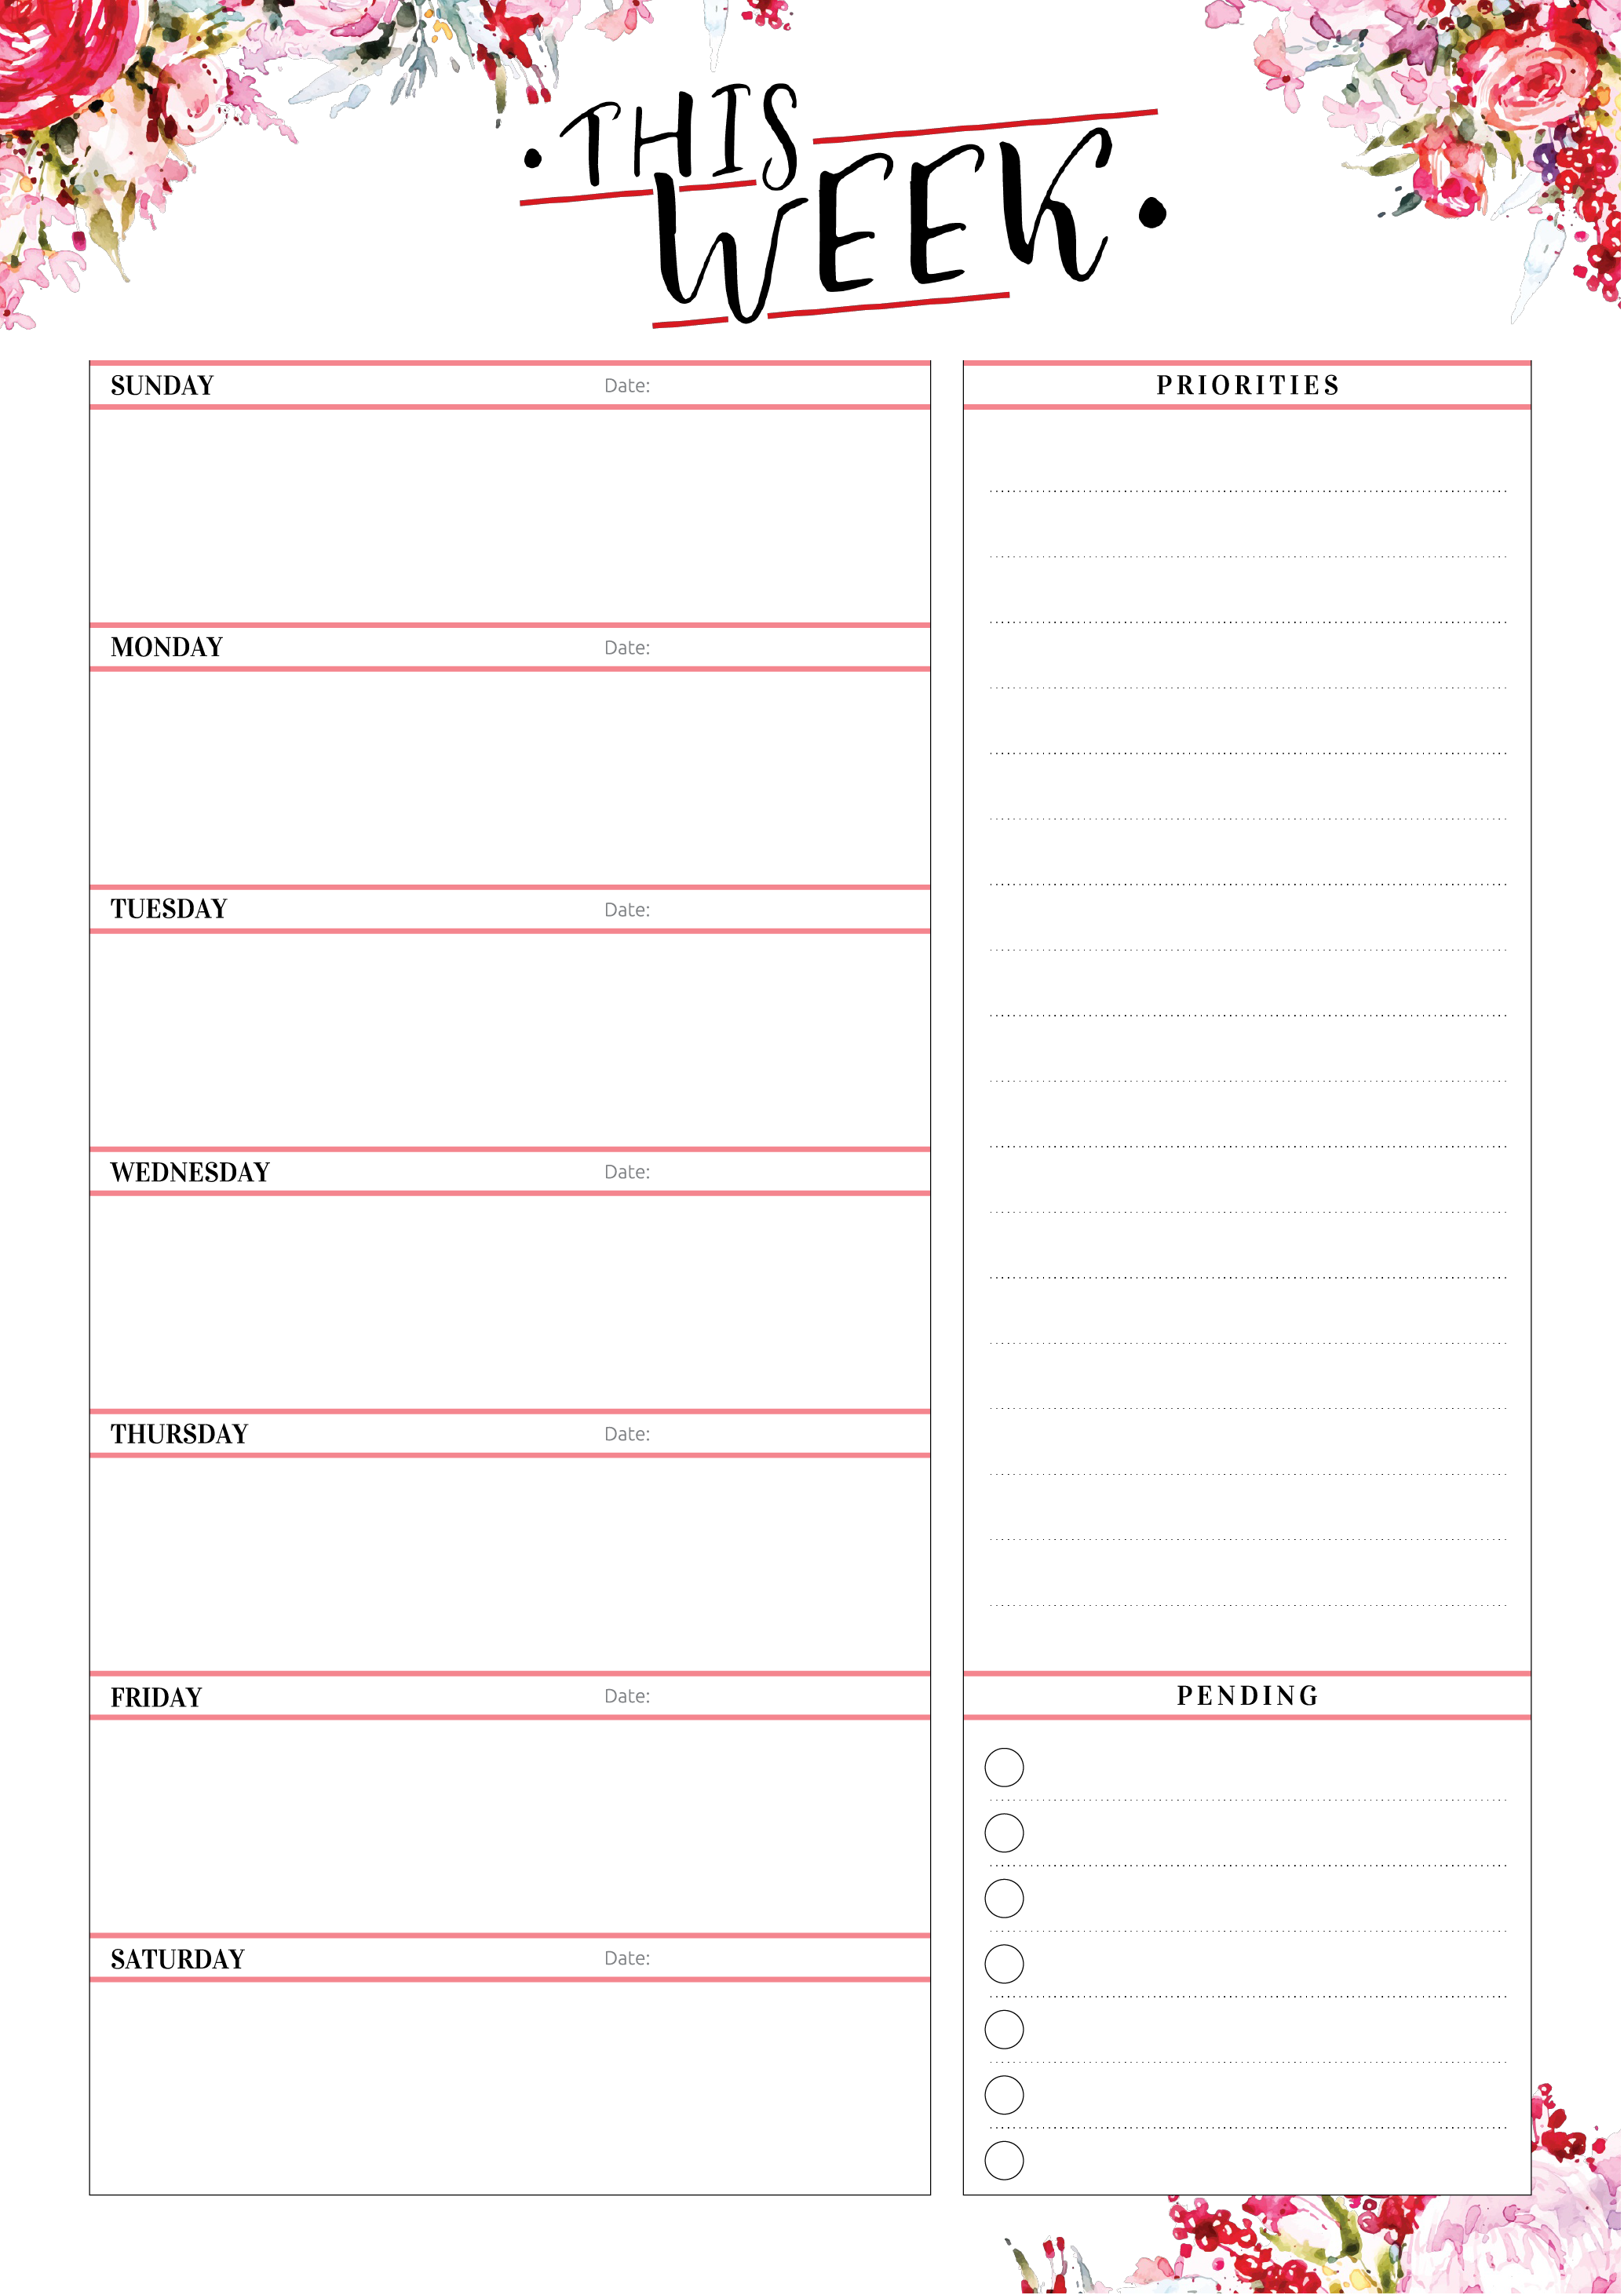 Free Printable Weekly Planner With Priorities Pdf Download Weekly Planner Template Weekly Planner Free Weekly Planner Free Printable